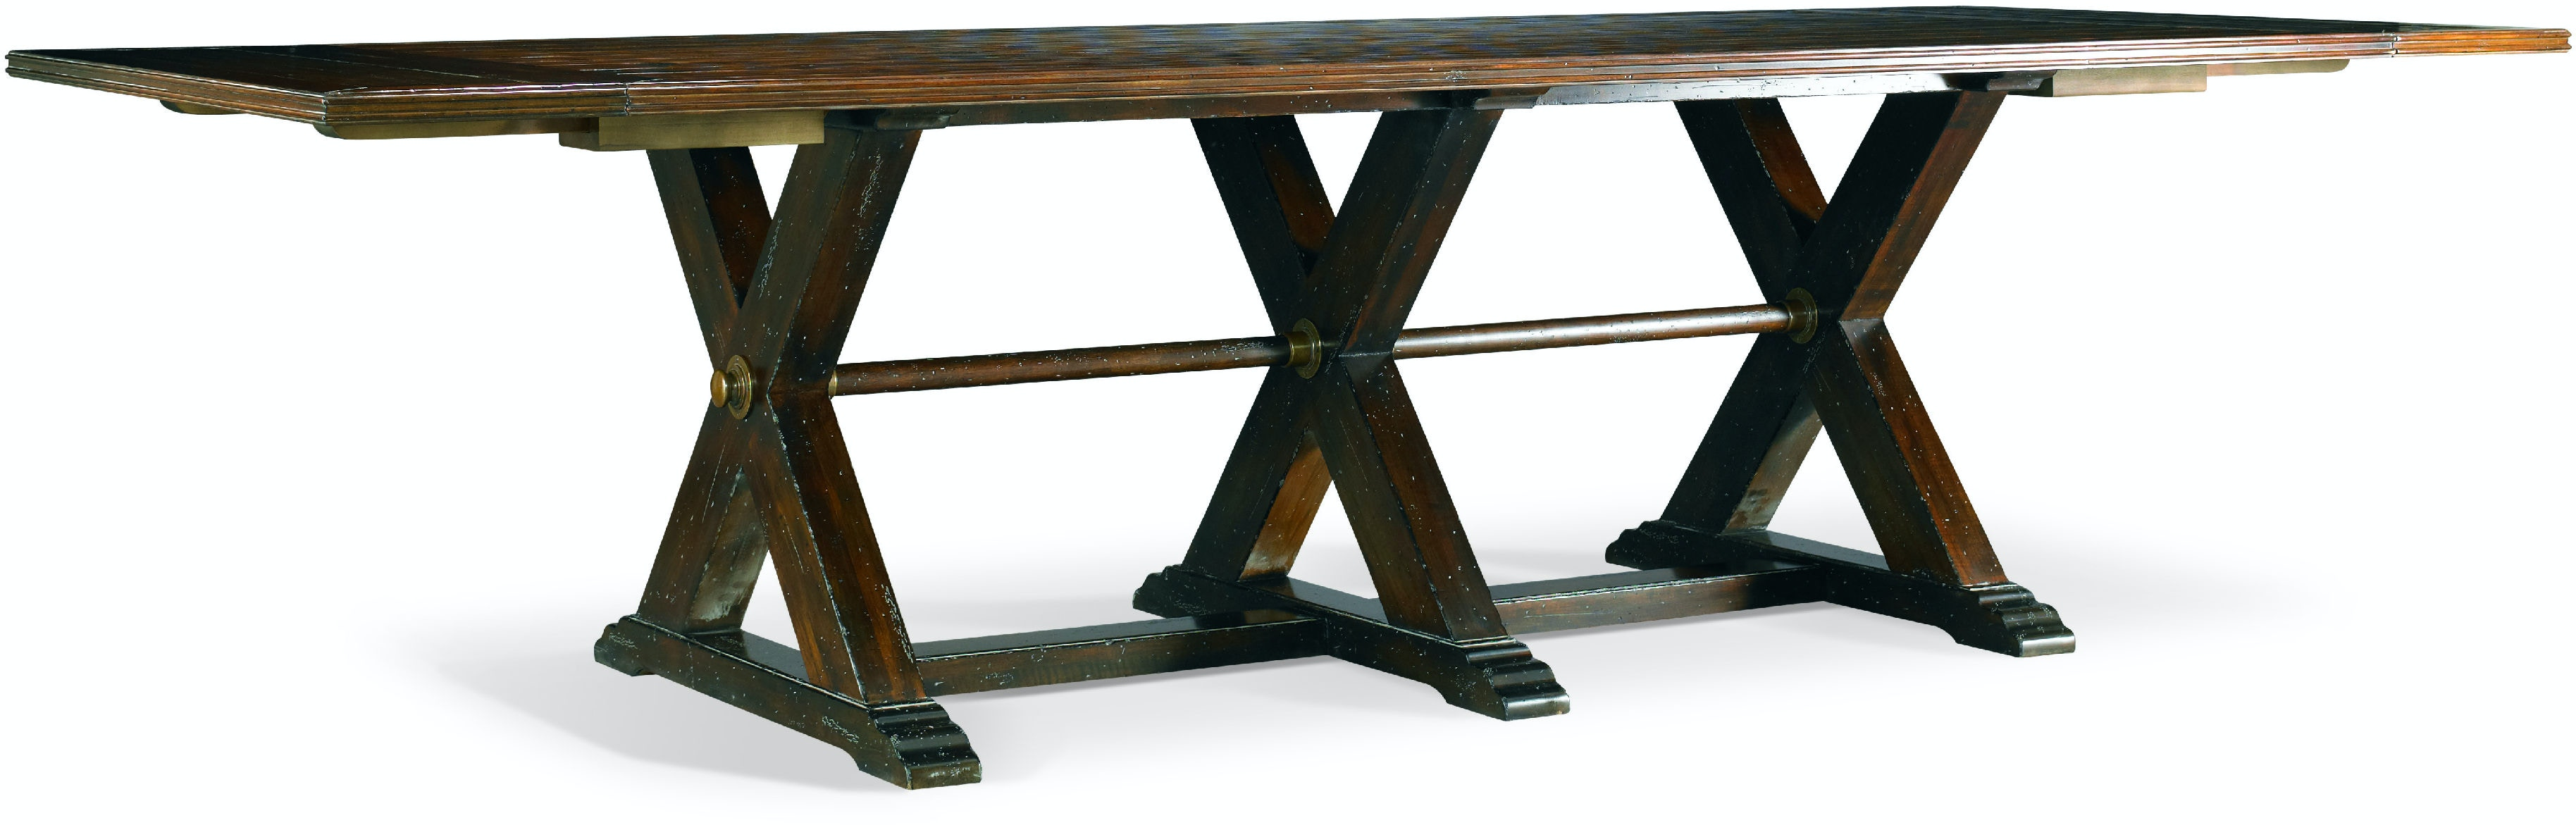 Hickory dining room table